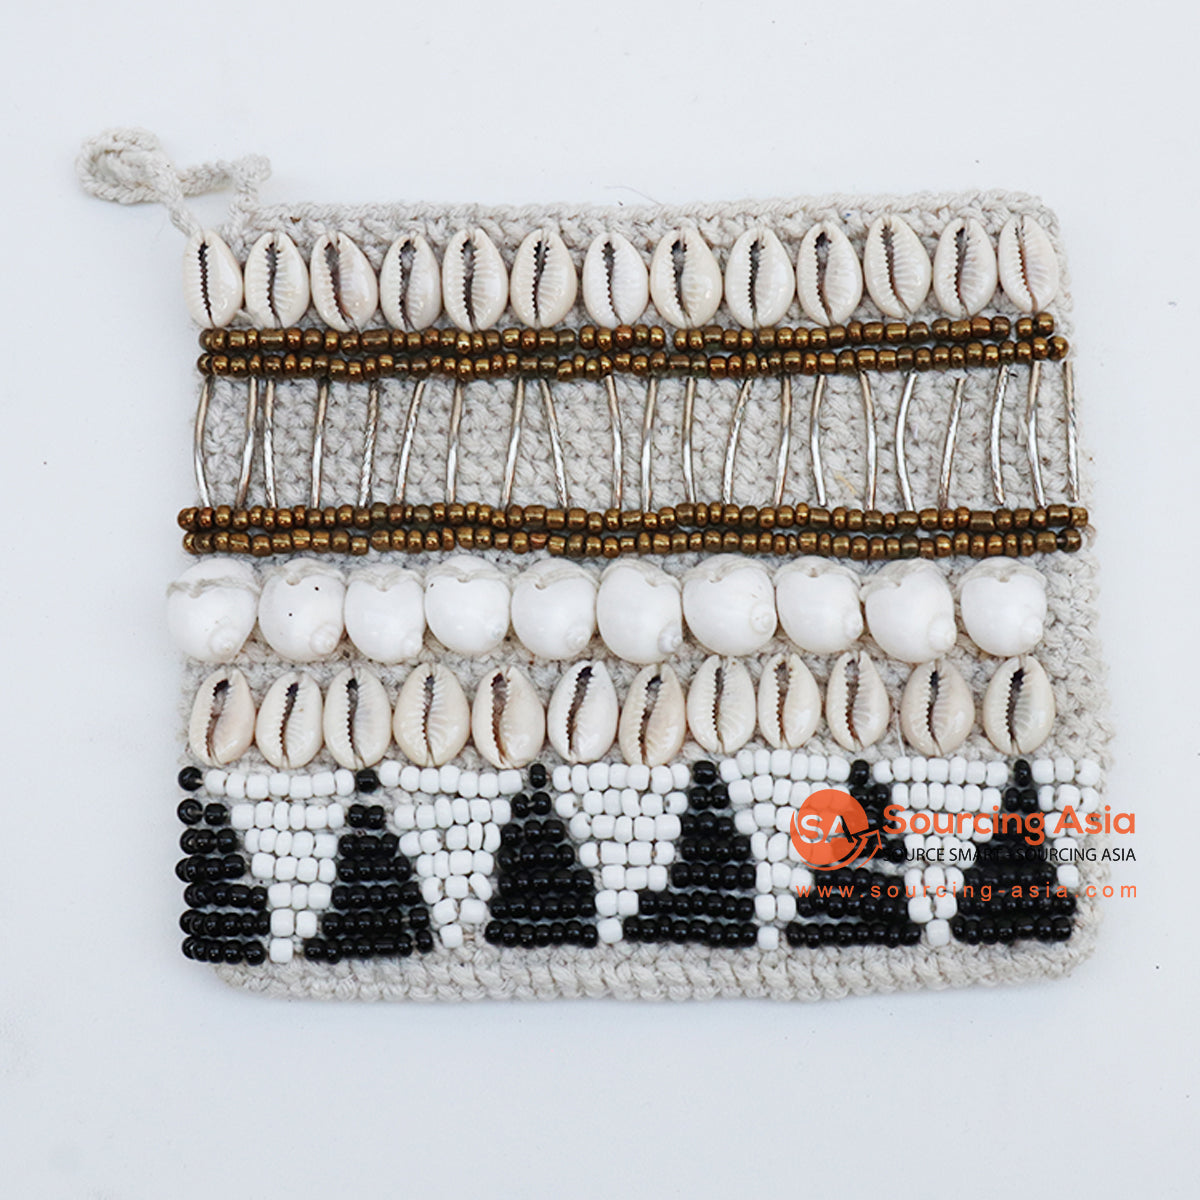 EXAC004-4 MACRAME PURSE WITH SHELLS AND BEADING